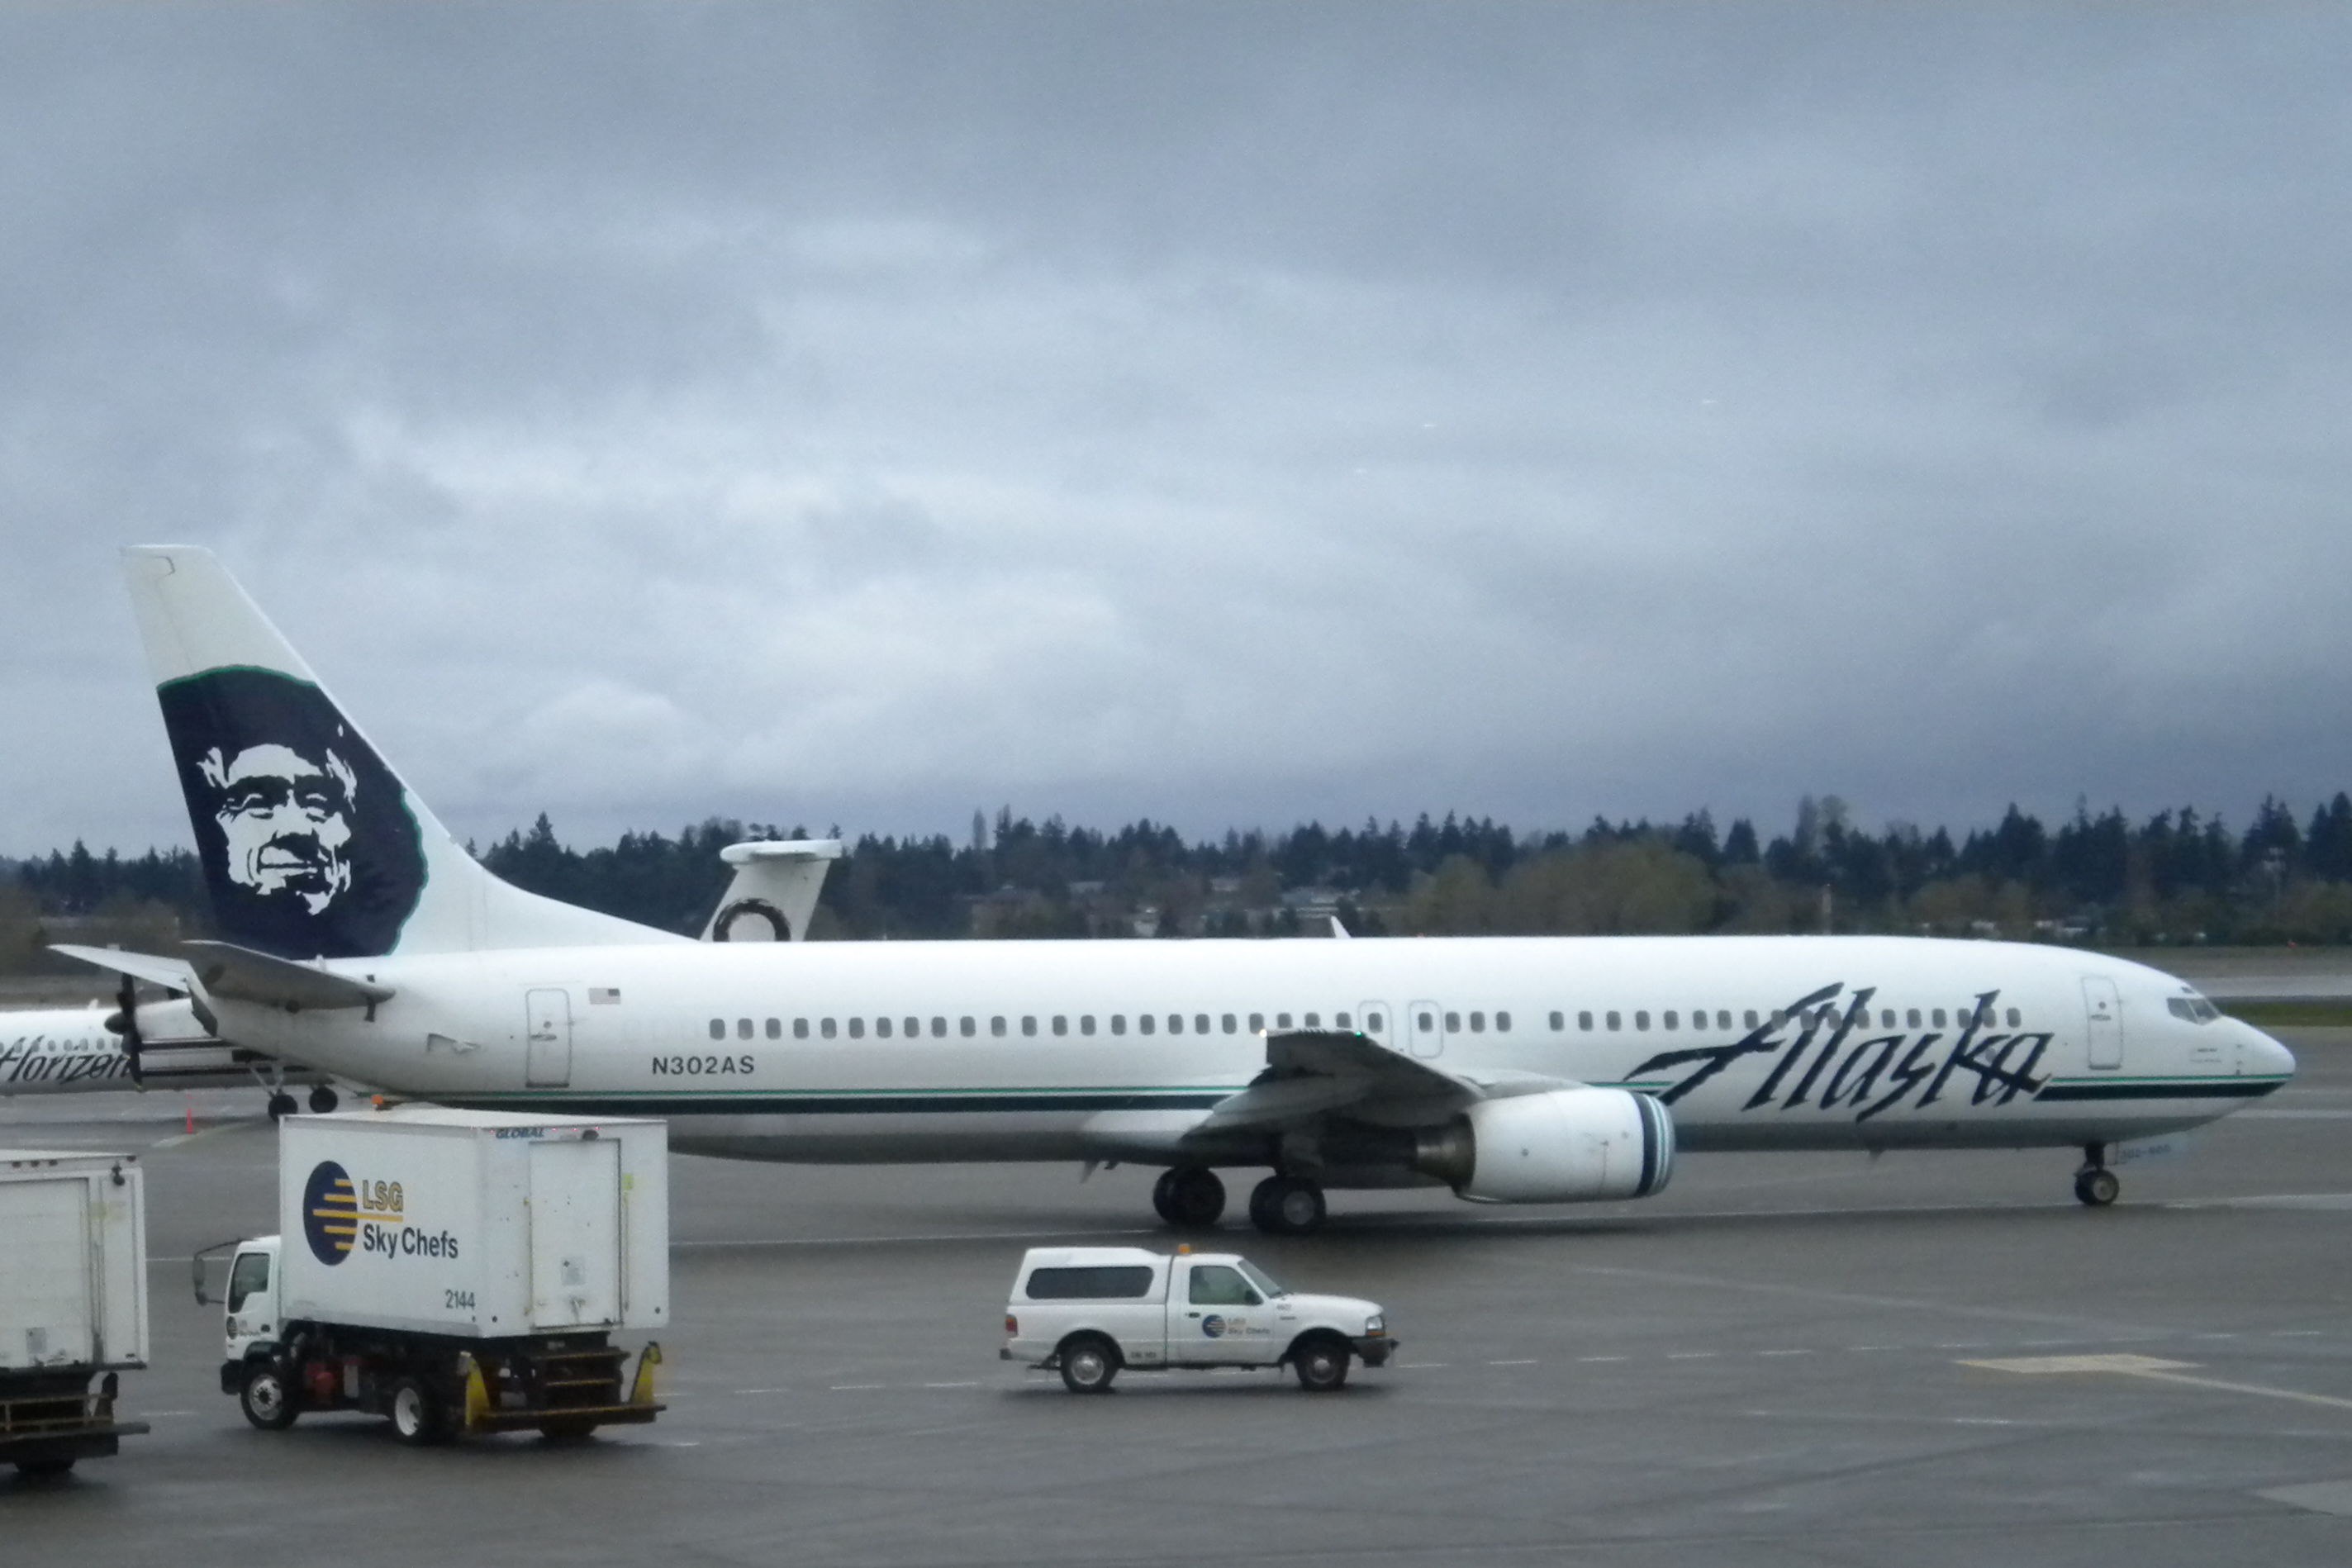 an introduction to the history of alaska airlines History of alaska airlines - horizon air find all the details you need to know about the history of alaska airlines - horizon air, from inception until today.